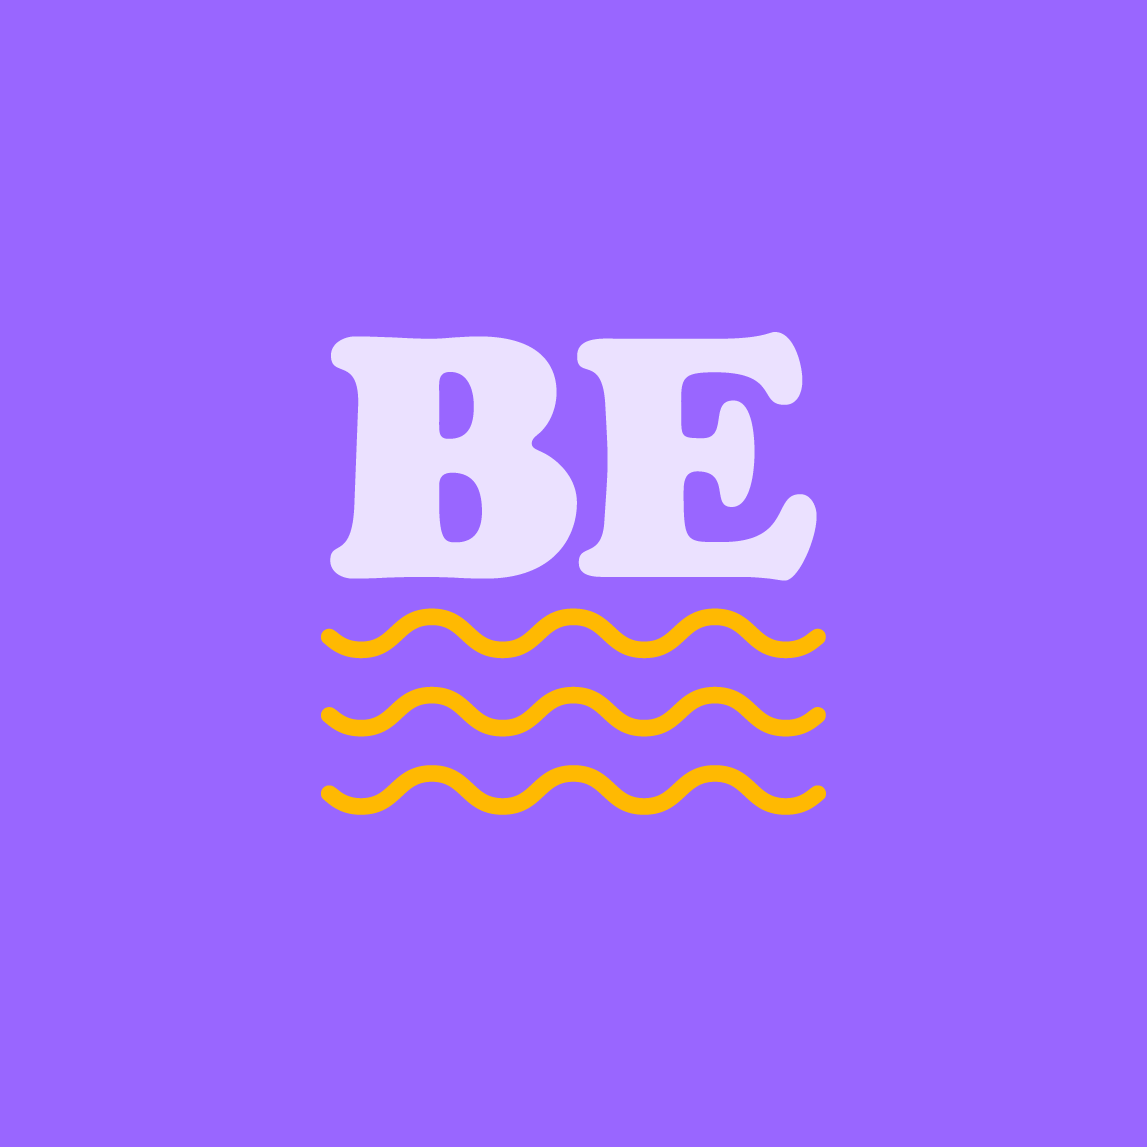 Bempowered abbreviated logo mark lilac and yellow